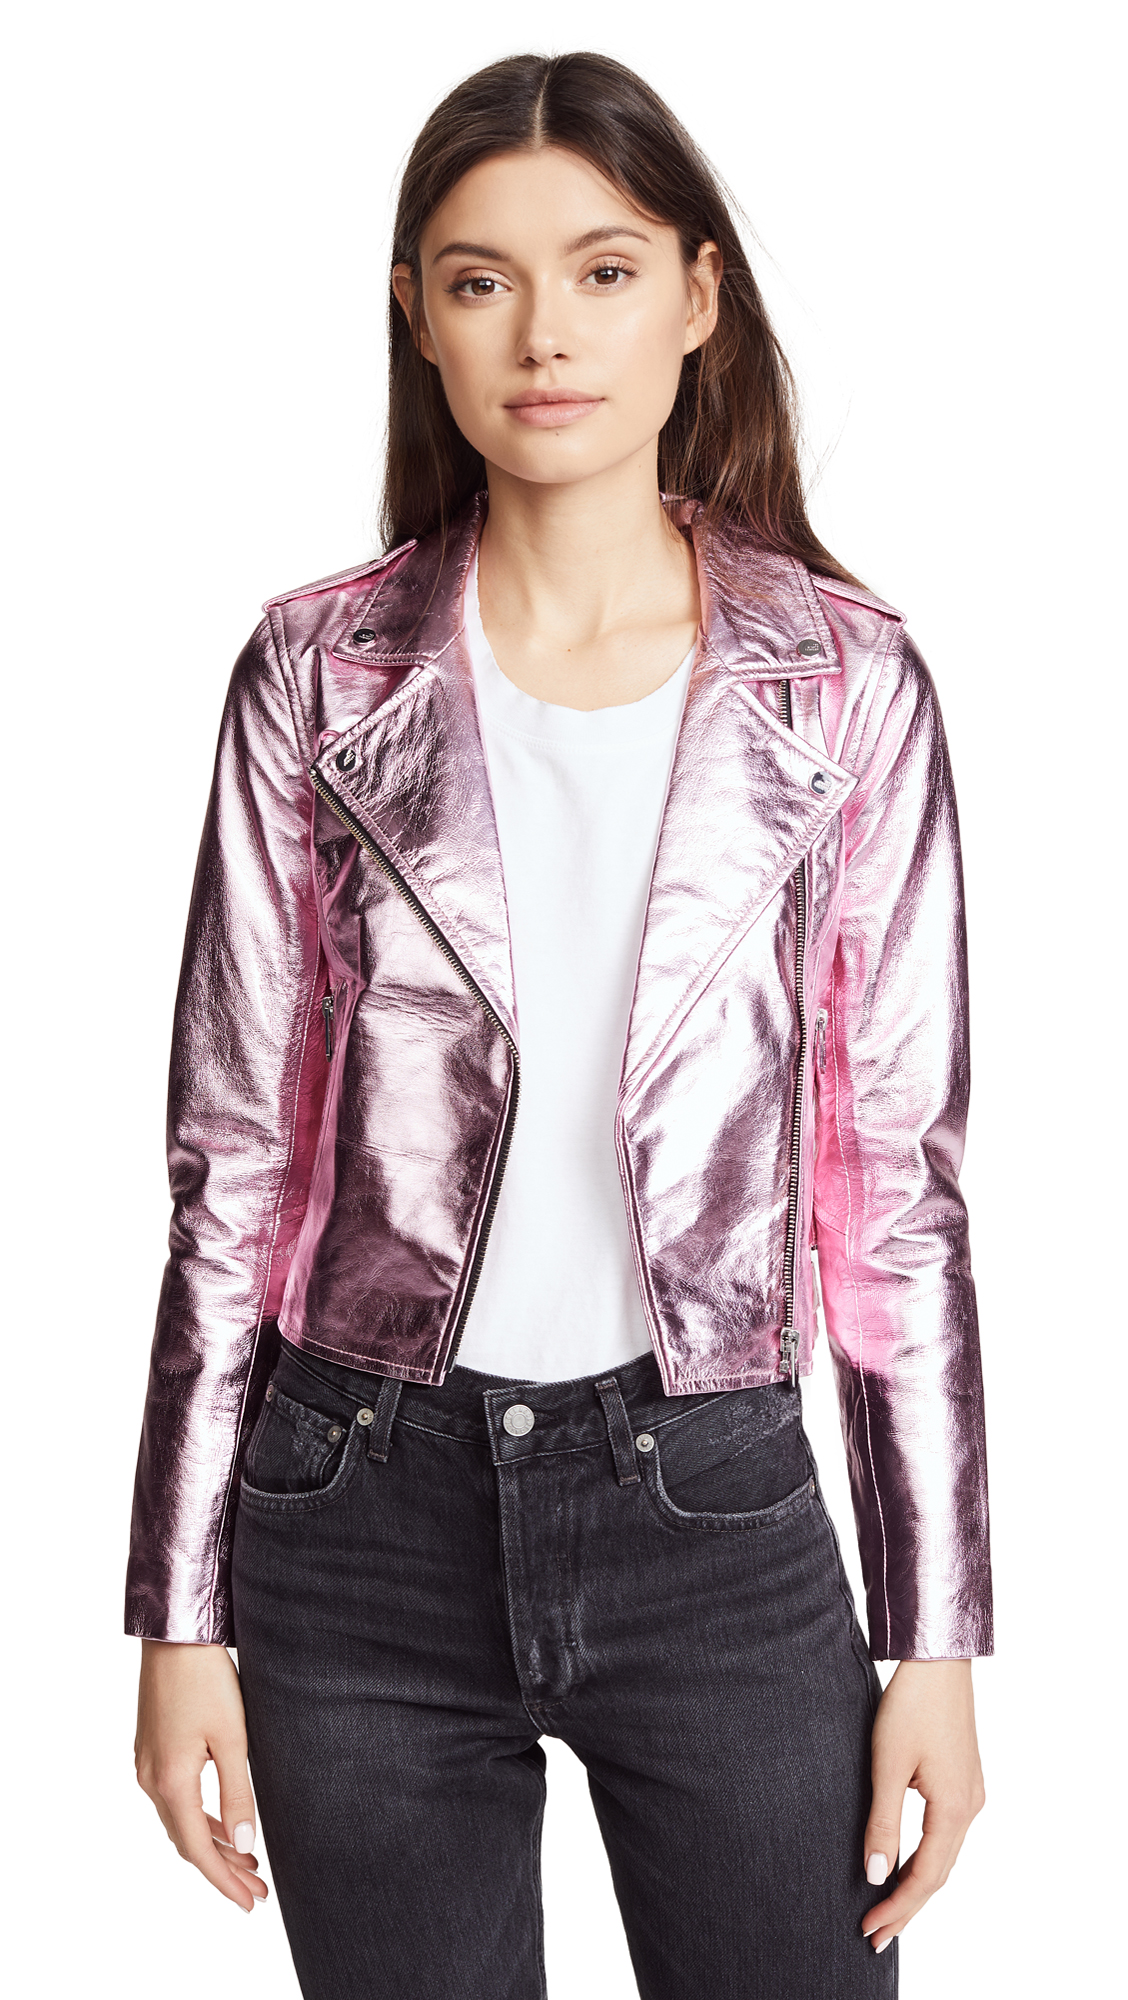 The Mighty Company Lecce Biker Crop Jacket In Metallic Pink